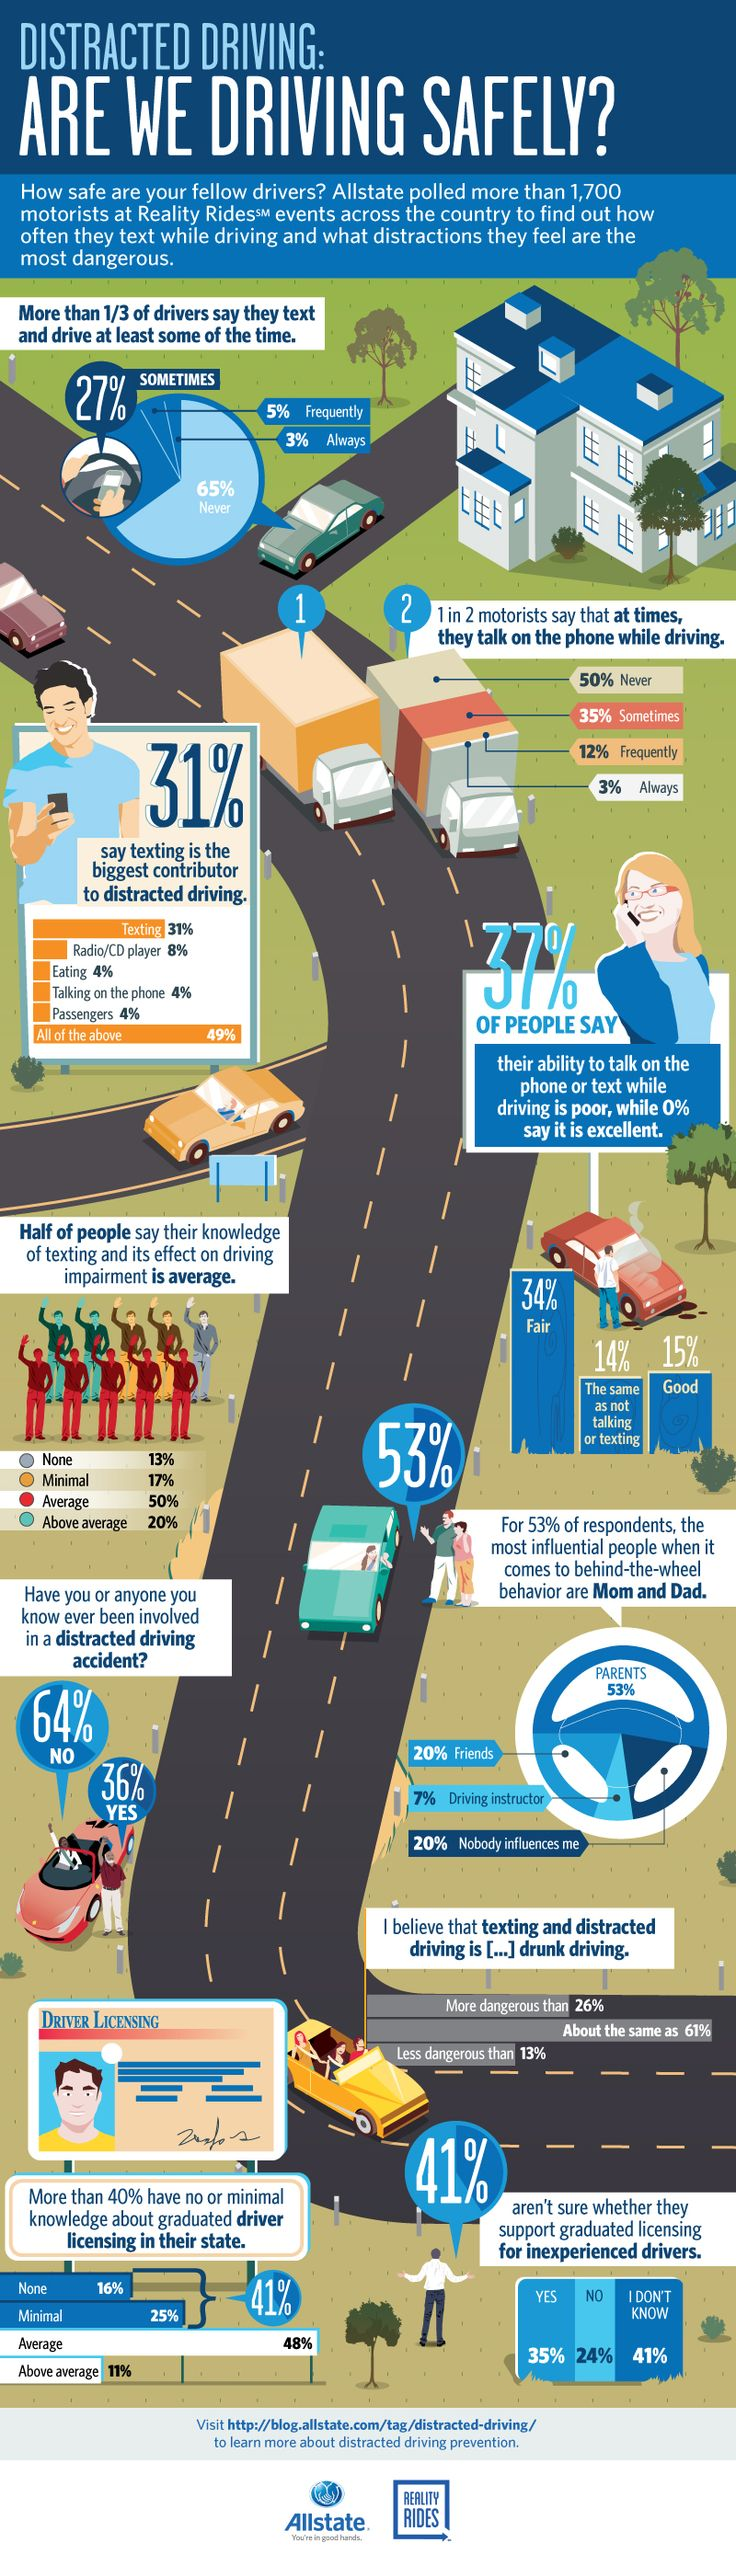 Distracted driving: It's a topic you hear about often, from government officials urging motorists to avoid distractions, to legislation making certain distracted driving behaviors illegal. We conducted a survey of drivers across the country on their driving habits. Check out this #infographic for the results.